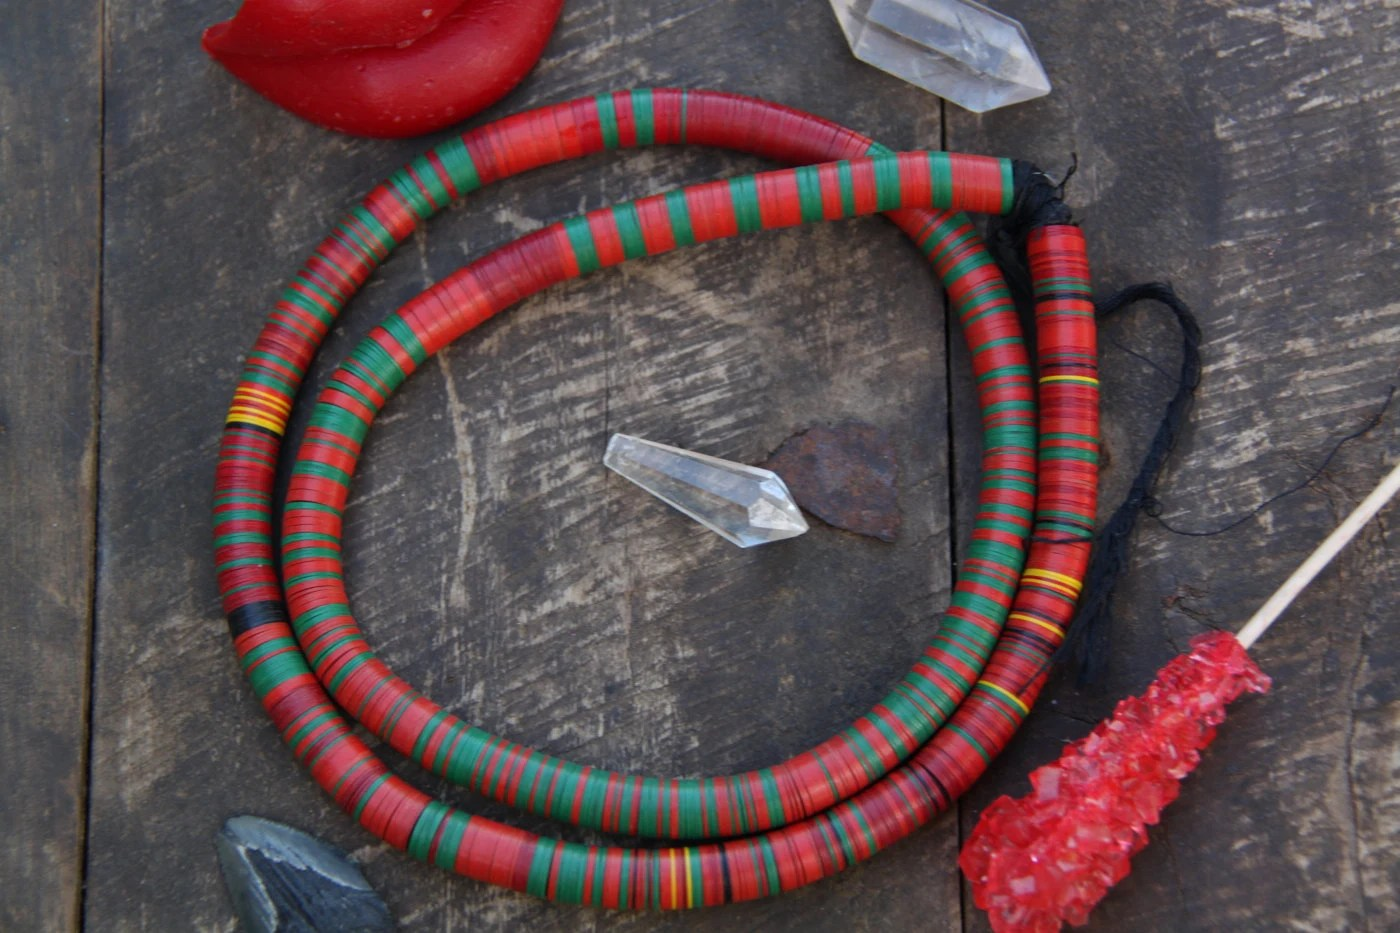 Red Amp Green Vintage African Vinyl Record Disc Beads 10mm